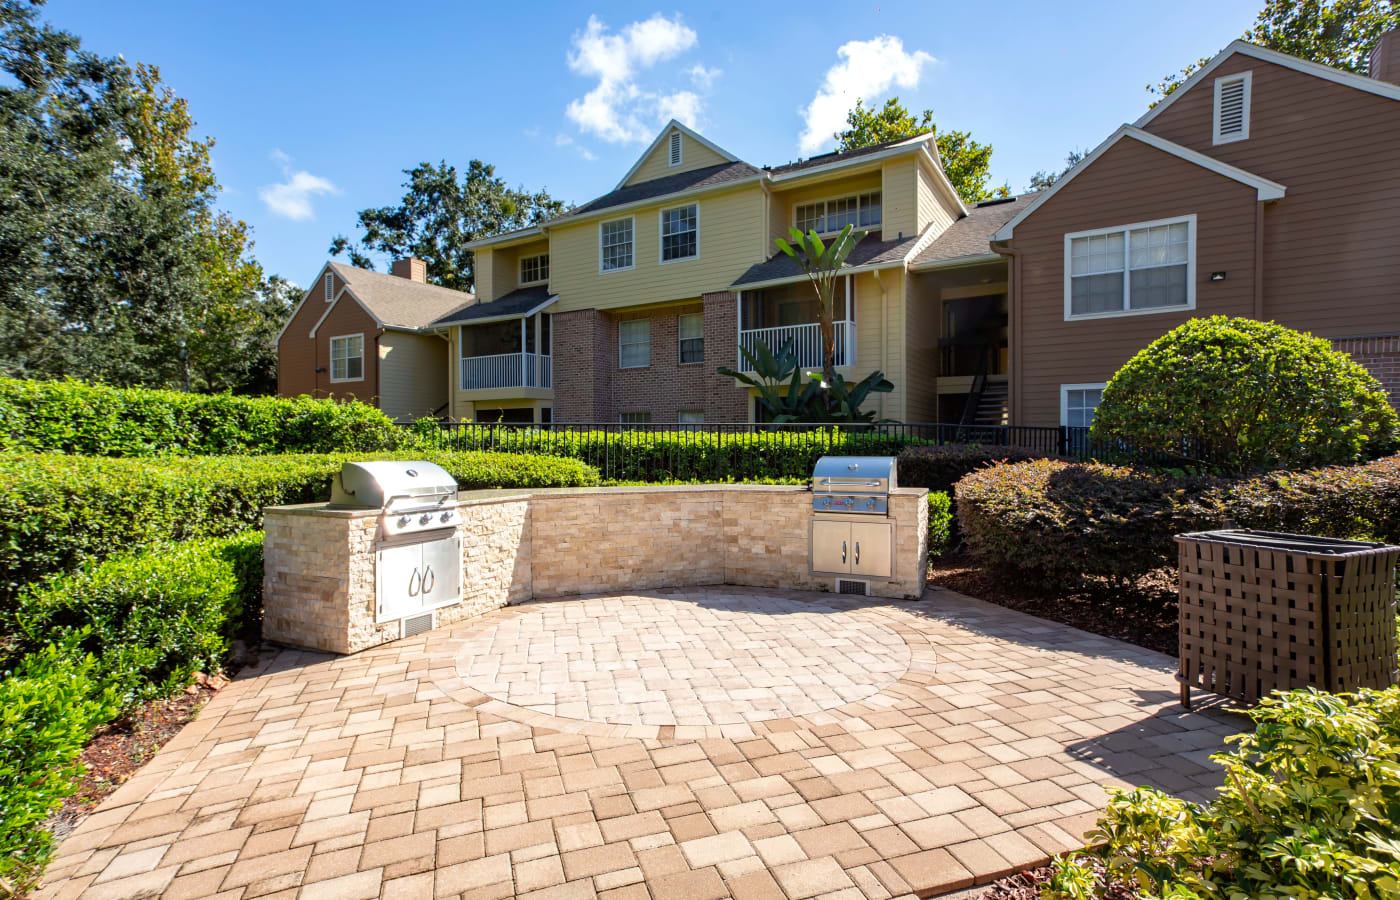 Barbecue area with gas grills at IMT Newport Colony in Casselberry, Florida